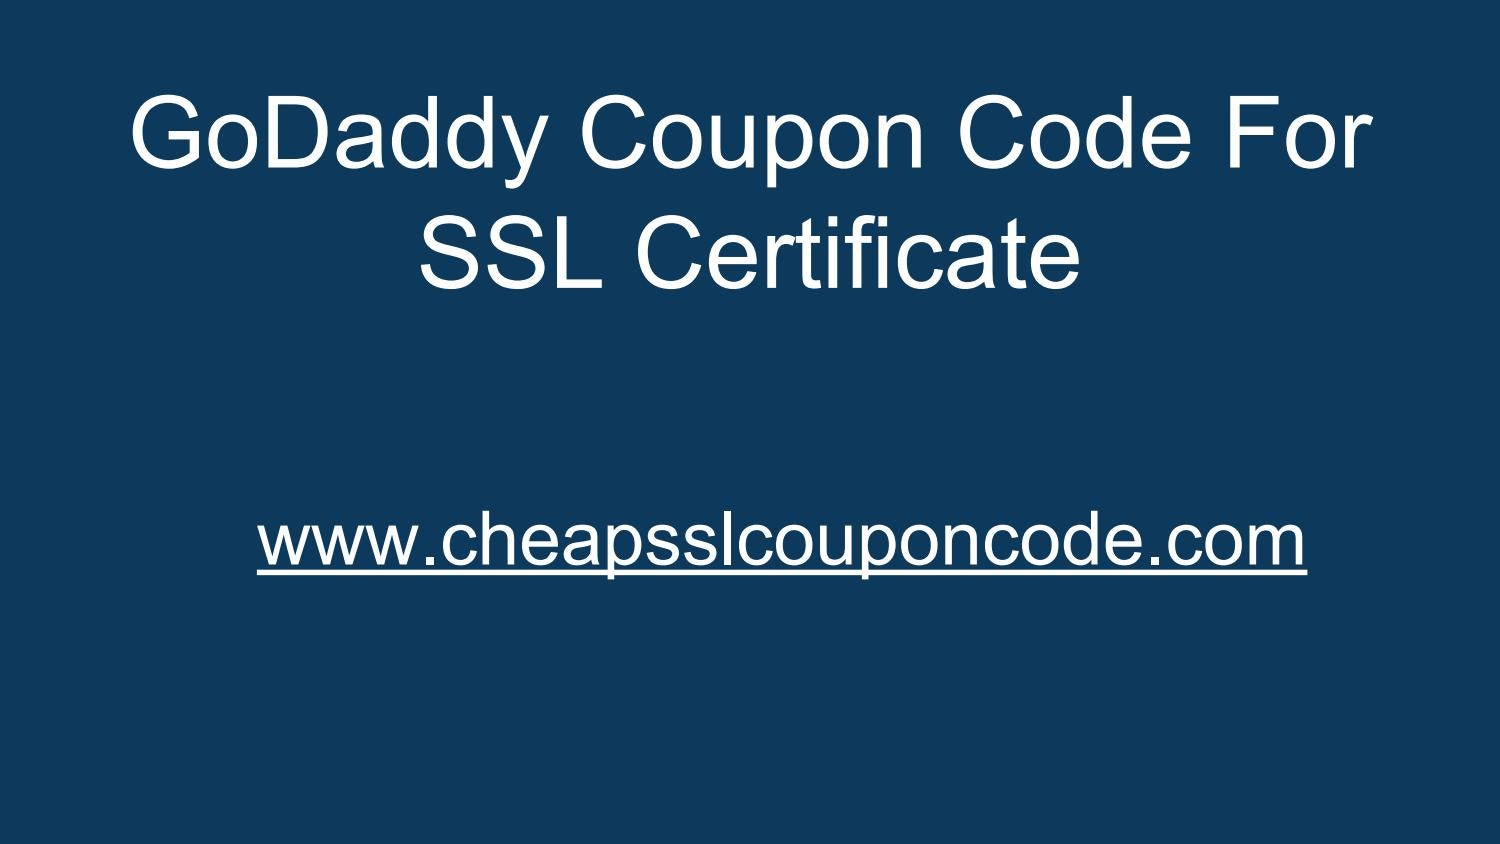 Godaddy Coupon Code For Ssl Certificate By Cheap Ssl Coupon Code Issuu